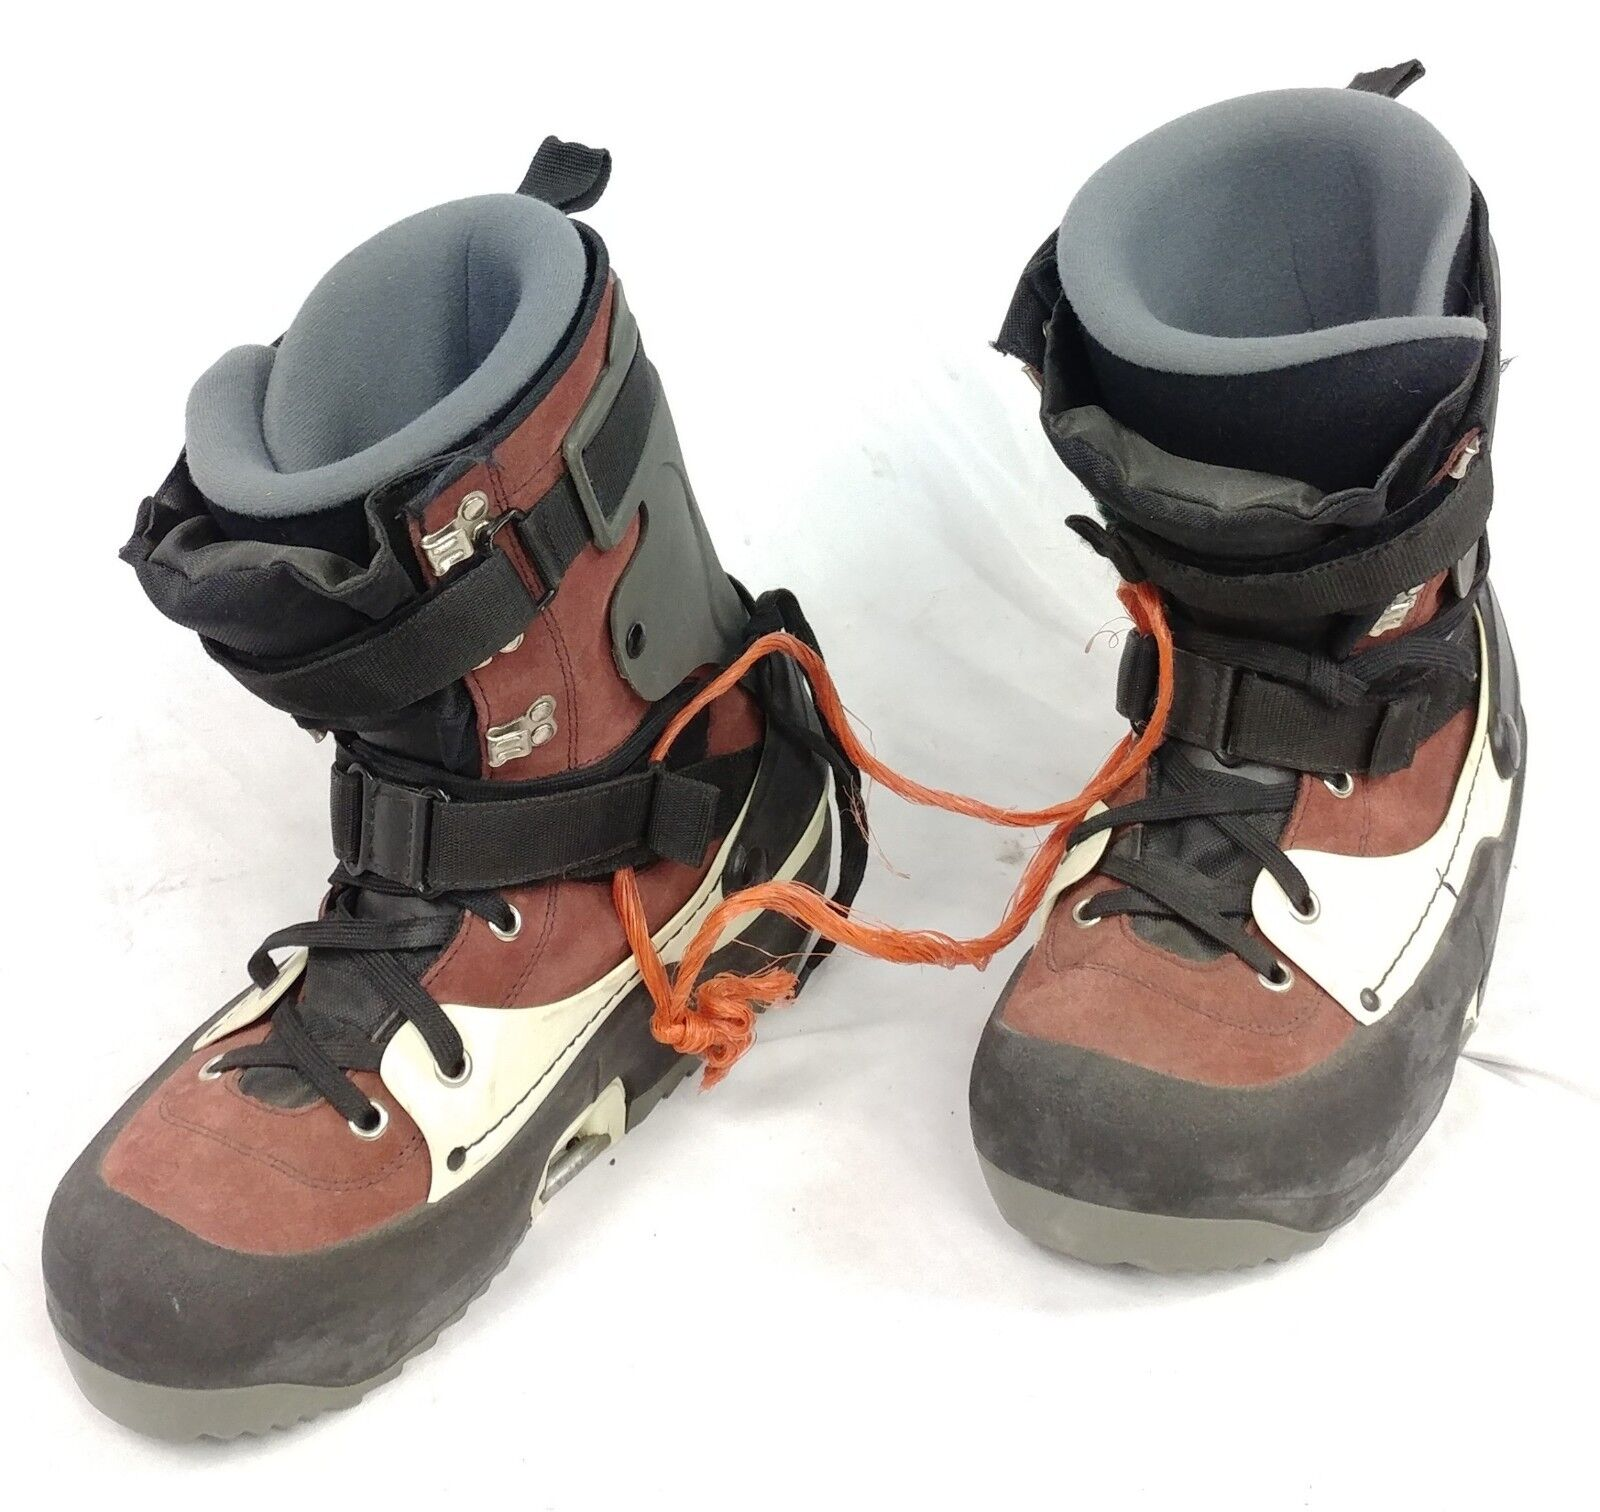 STEP IN, Santa Cruz DNR boots, EASIEST IN AND OUT OF BINDINGS.GO STEP IN'S new